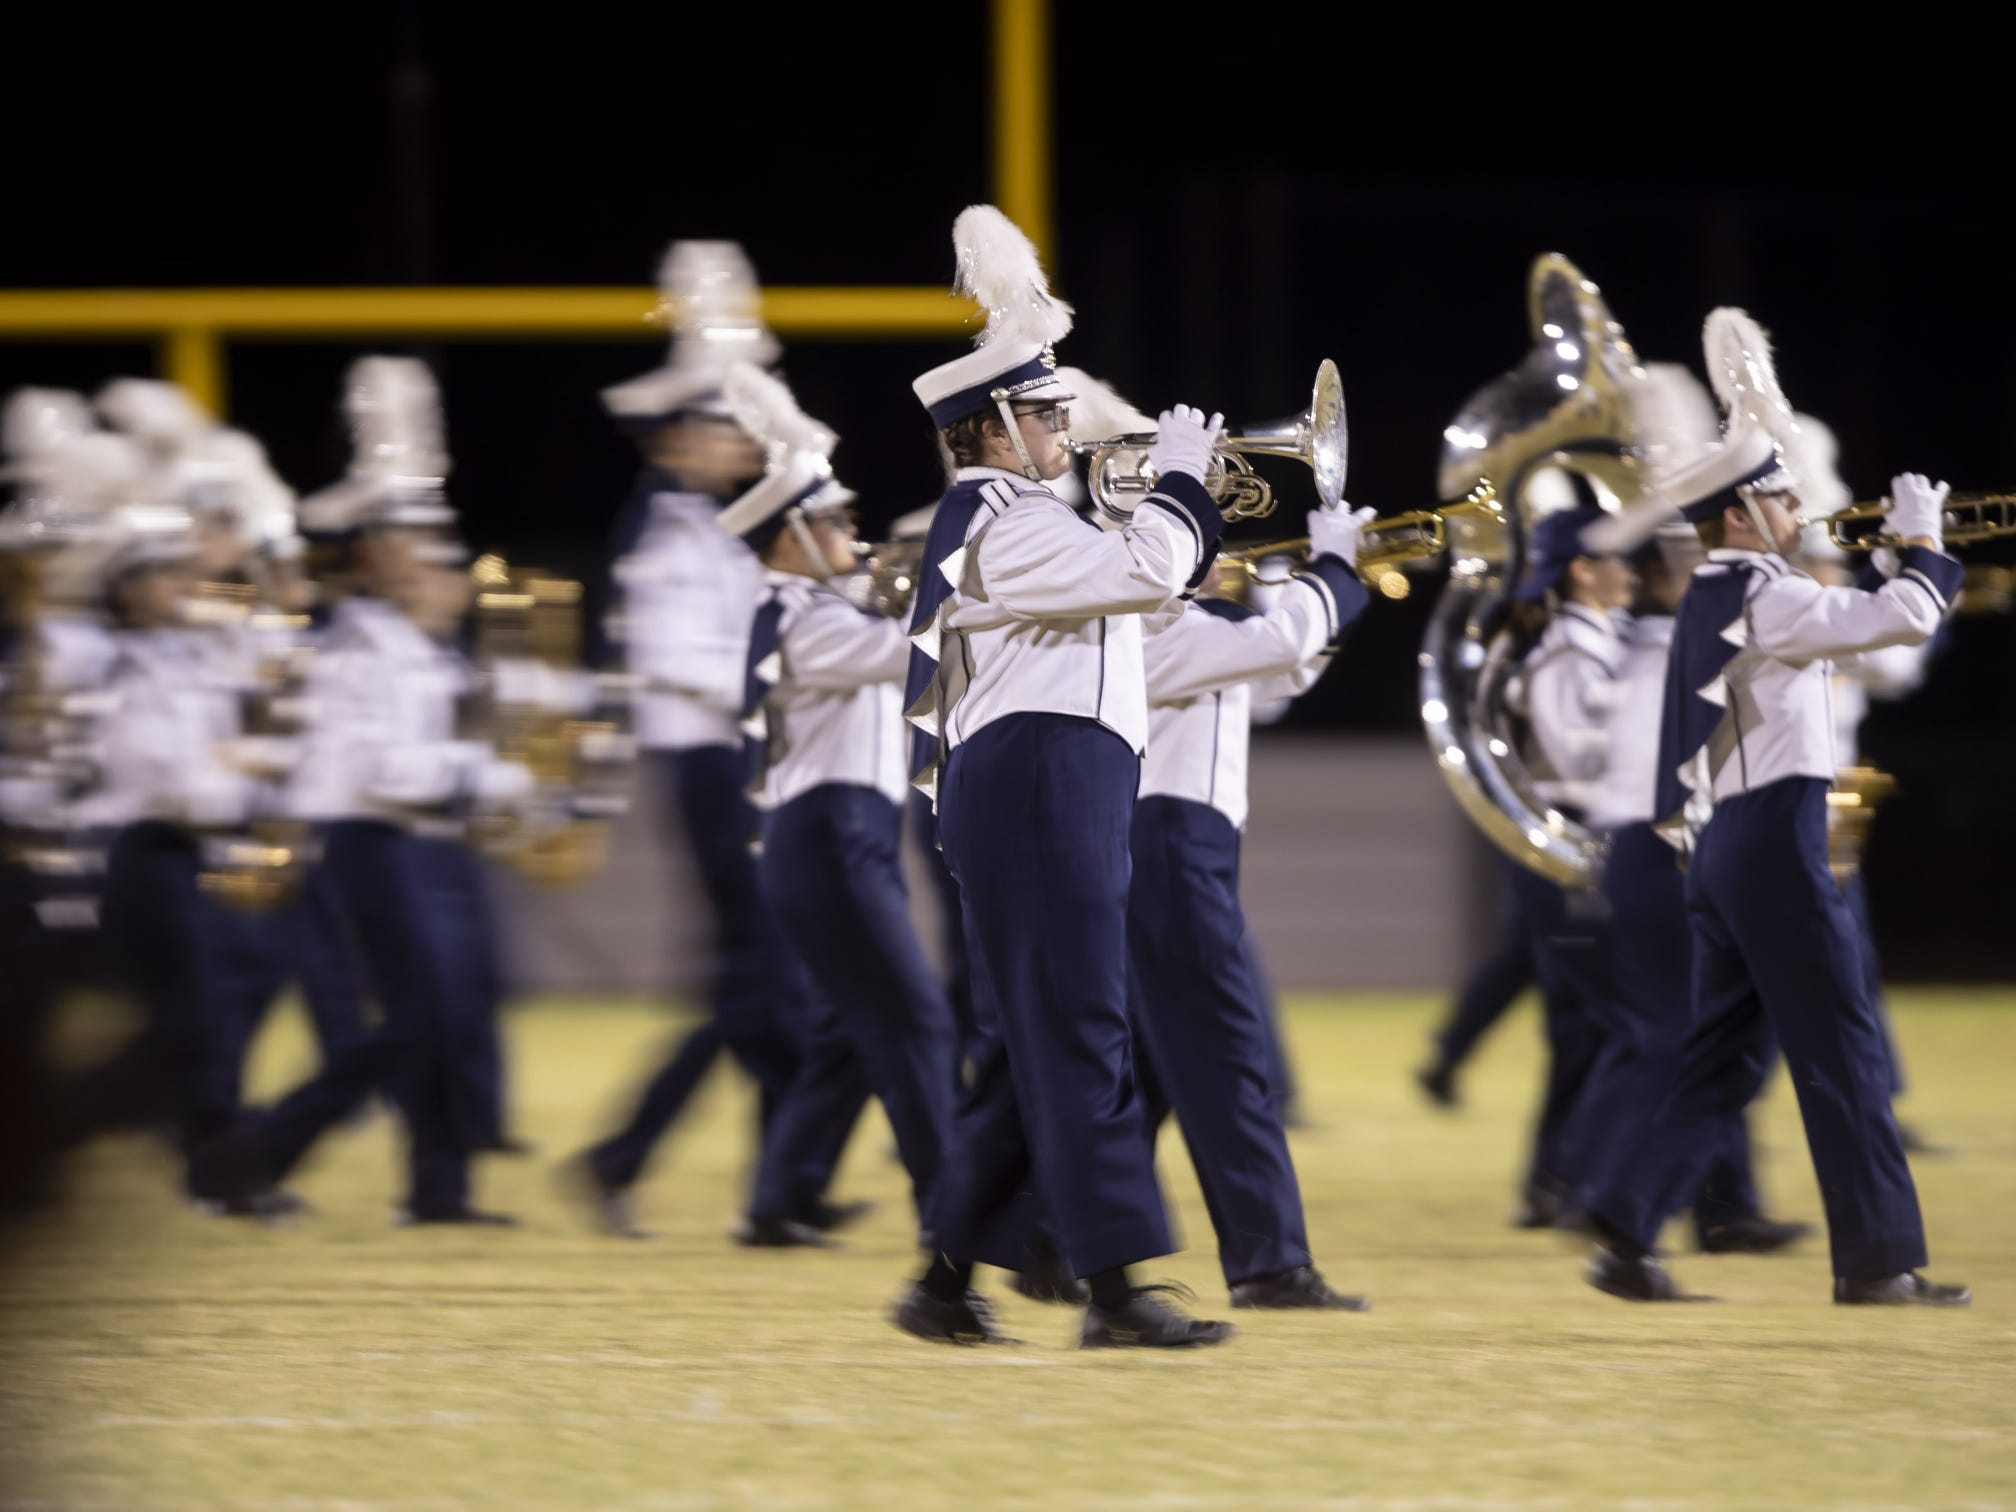 The Willow Canyon marching band plays during halftime at the football game between the Willow Canyon Wildcats and the Shadow Ridge Stallions at Willow Canyon High School on Friday, September 7, 2018 in Surprise, Arizona. #azhsfb